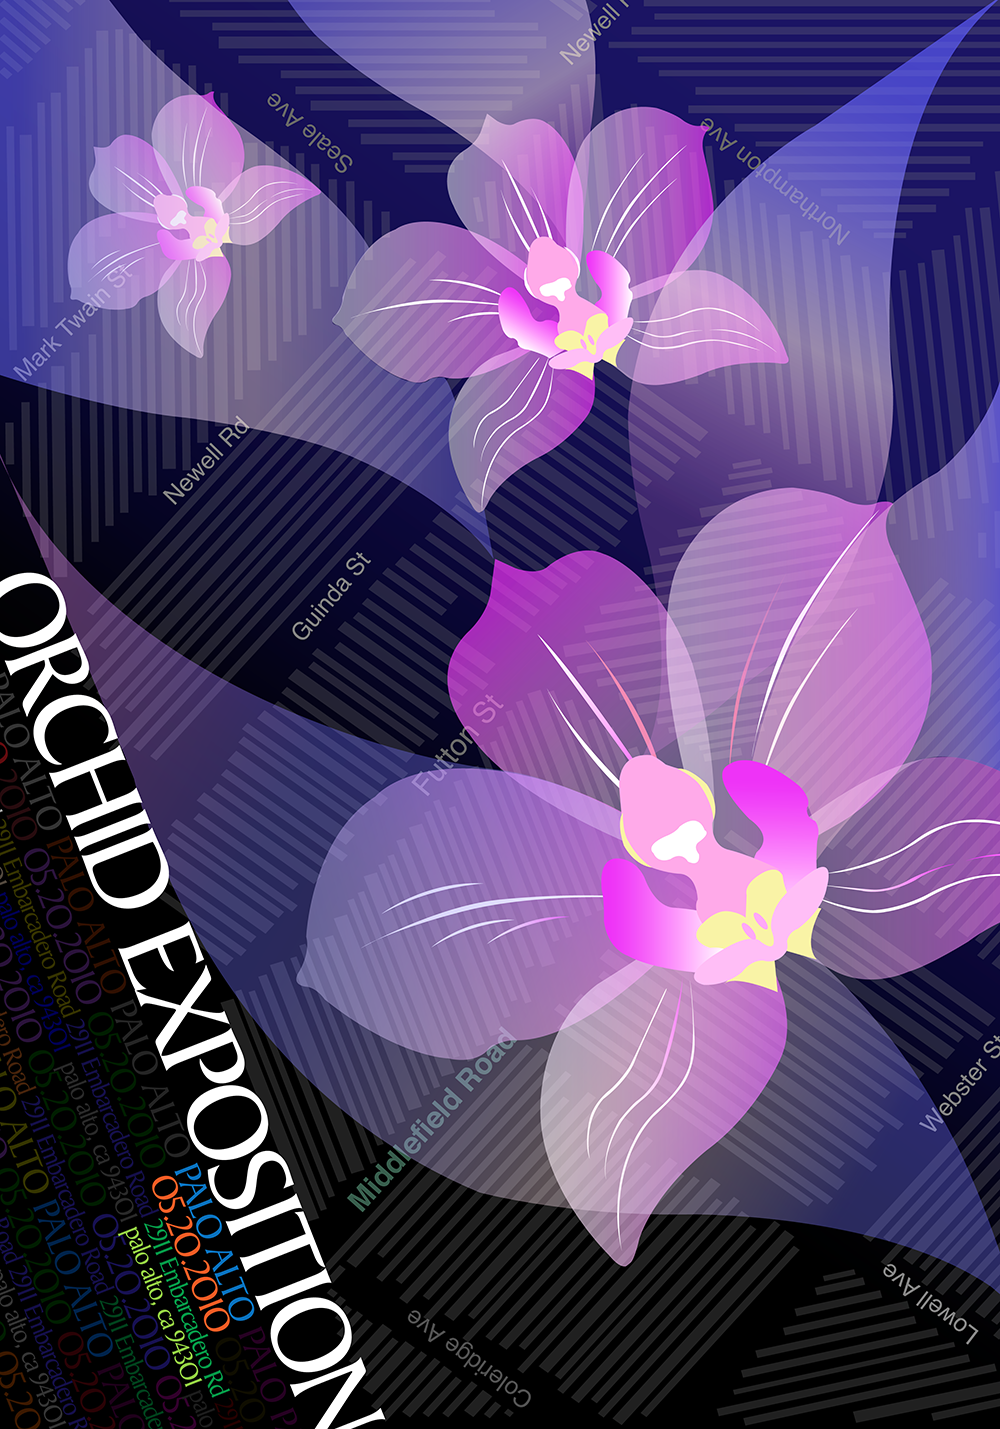 Poster design for an orchid show in Palo Alto.